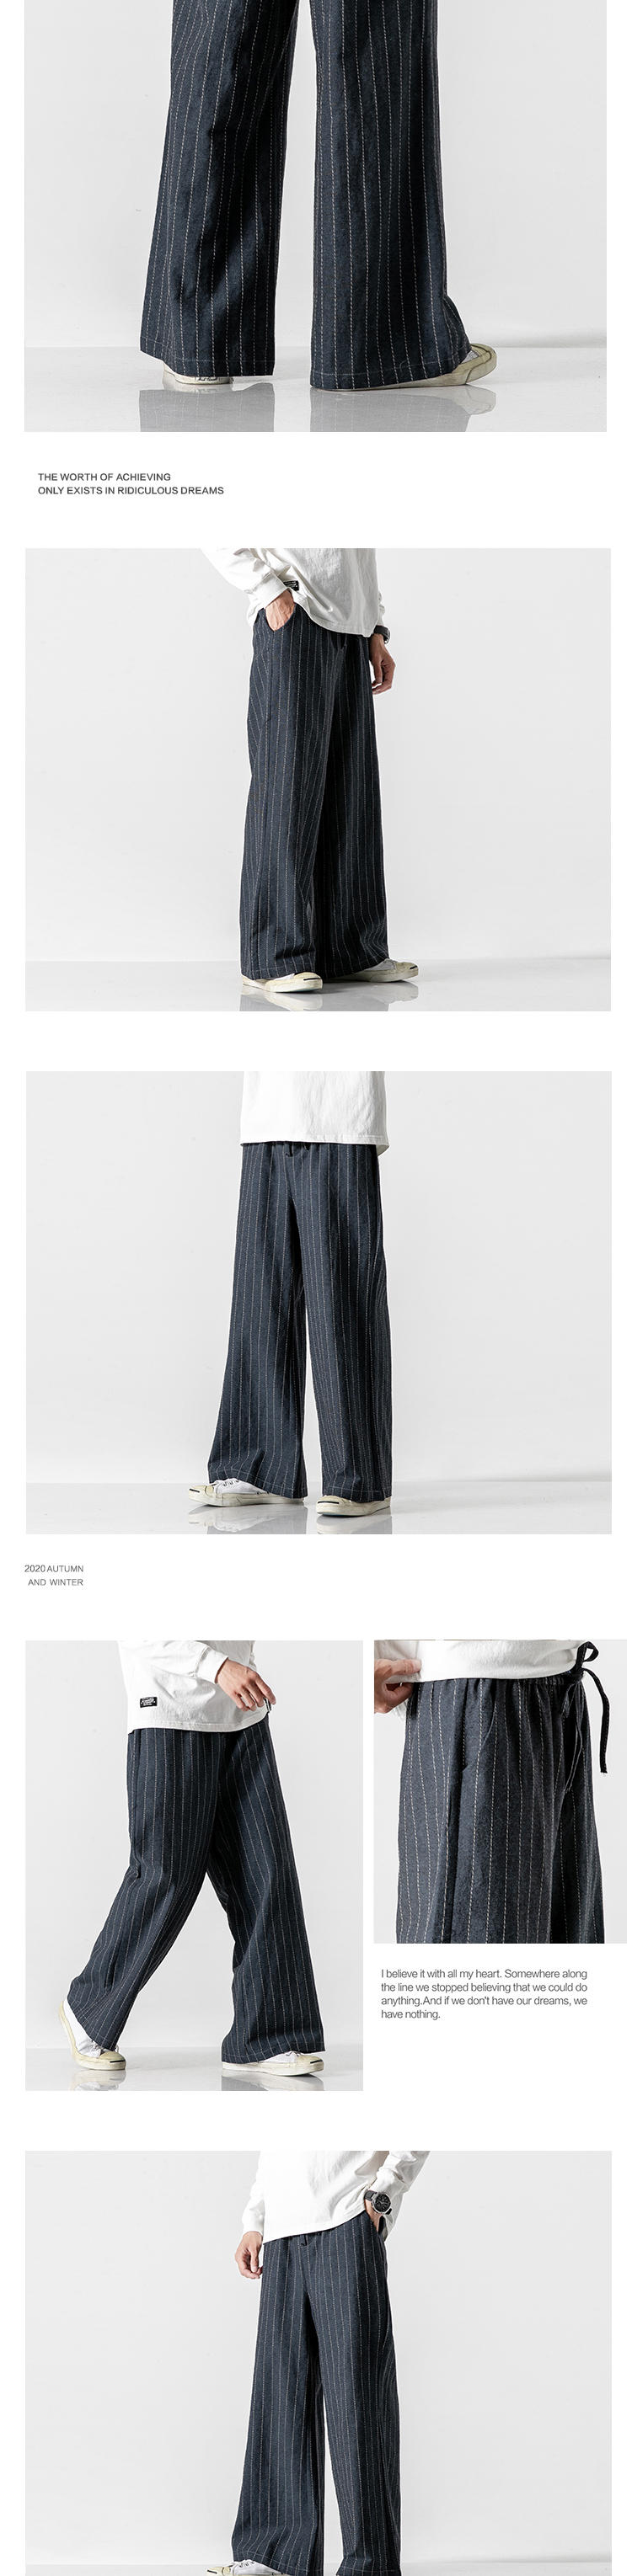 Sinicism Store Men Striped Chinese Style Wide Leg Pants Mens 2020 Japan Style Loose Trousers Male Oversize Vintage Casual Pants 34